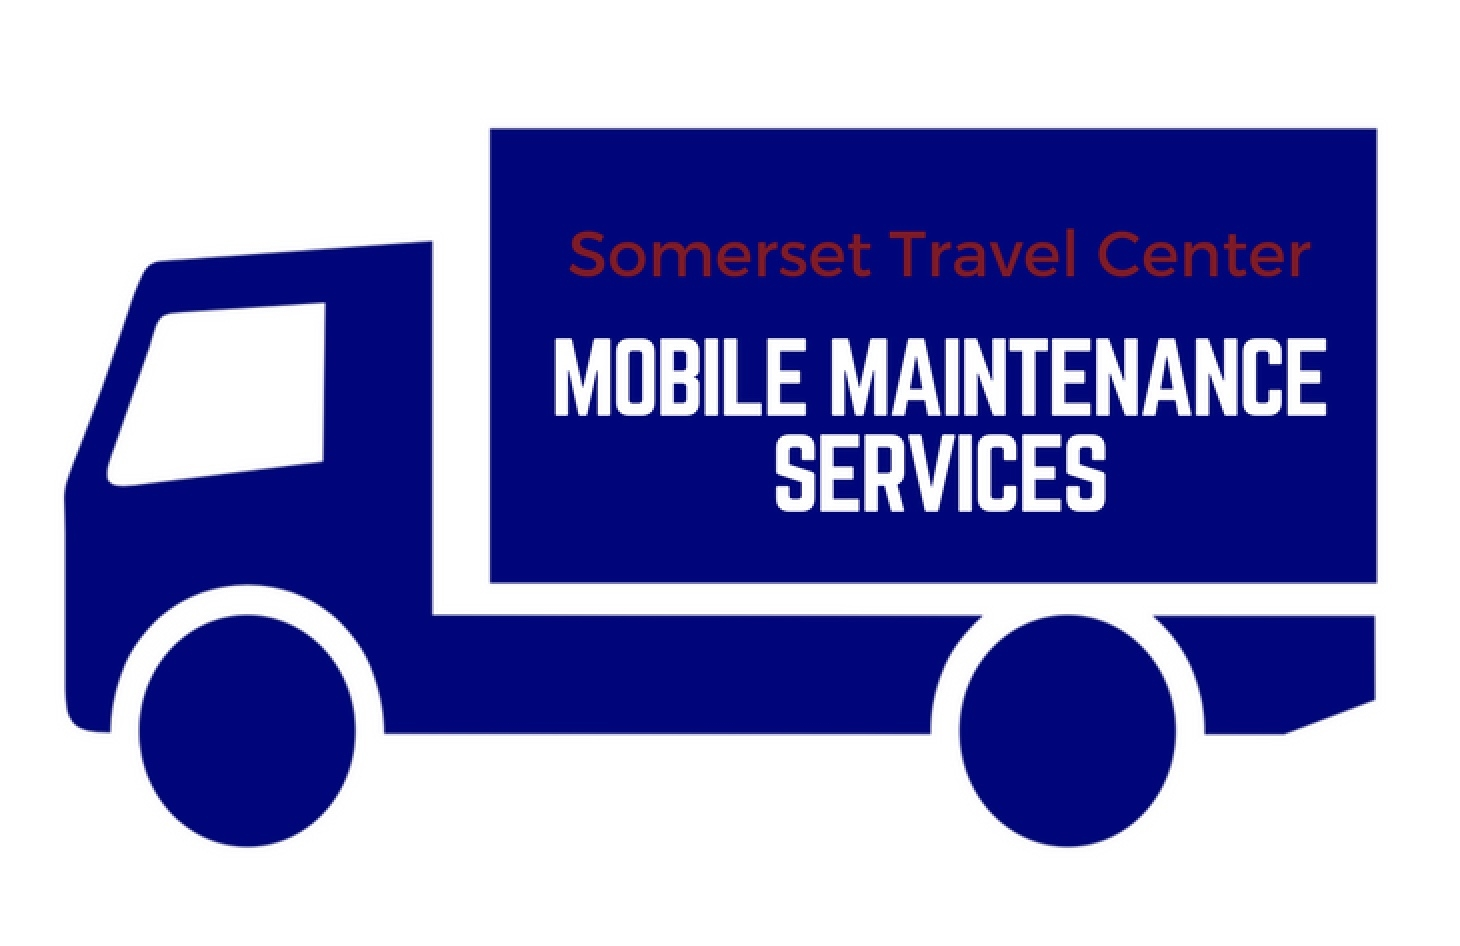 Somerset travel center mobile maintenance services